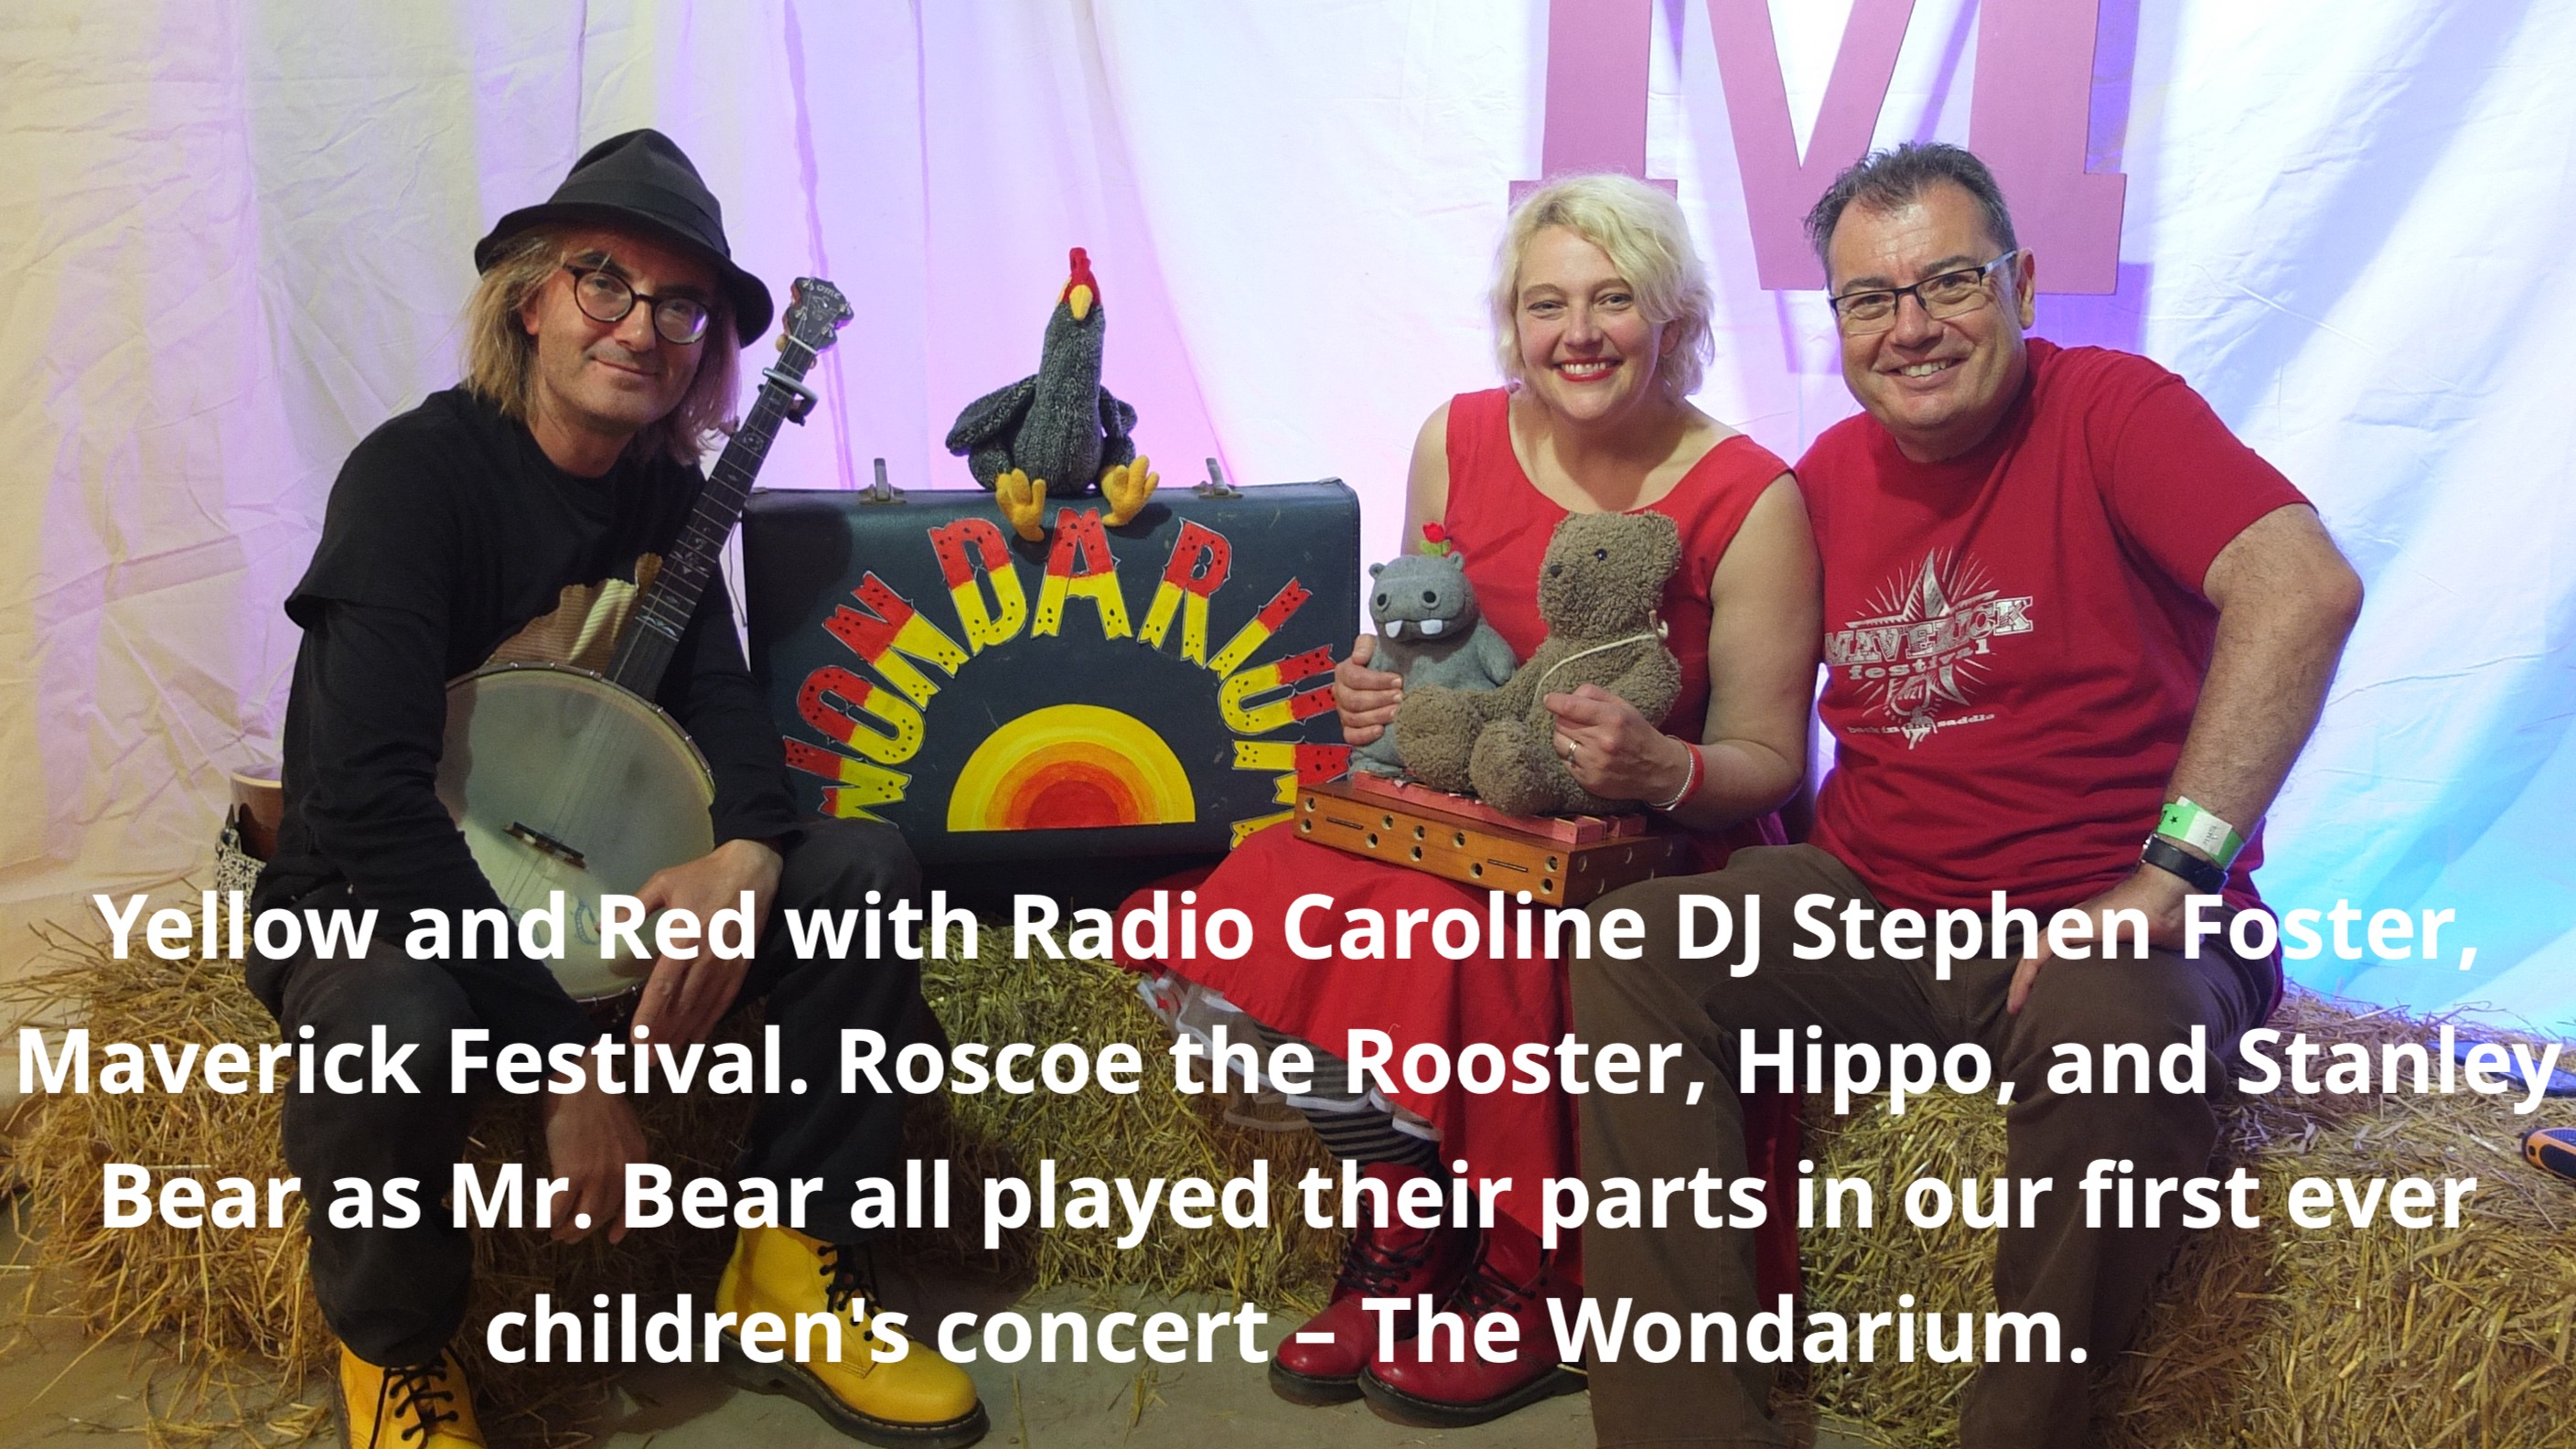 Jeni and Alfred with stuffed animals and DJ Stephen Foster.